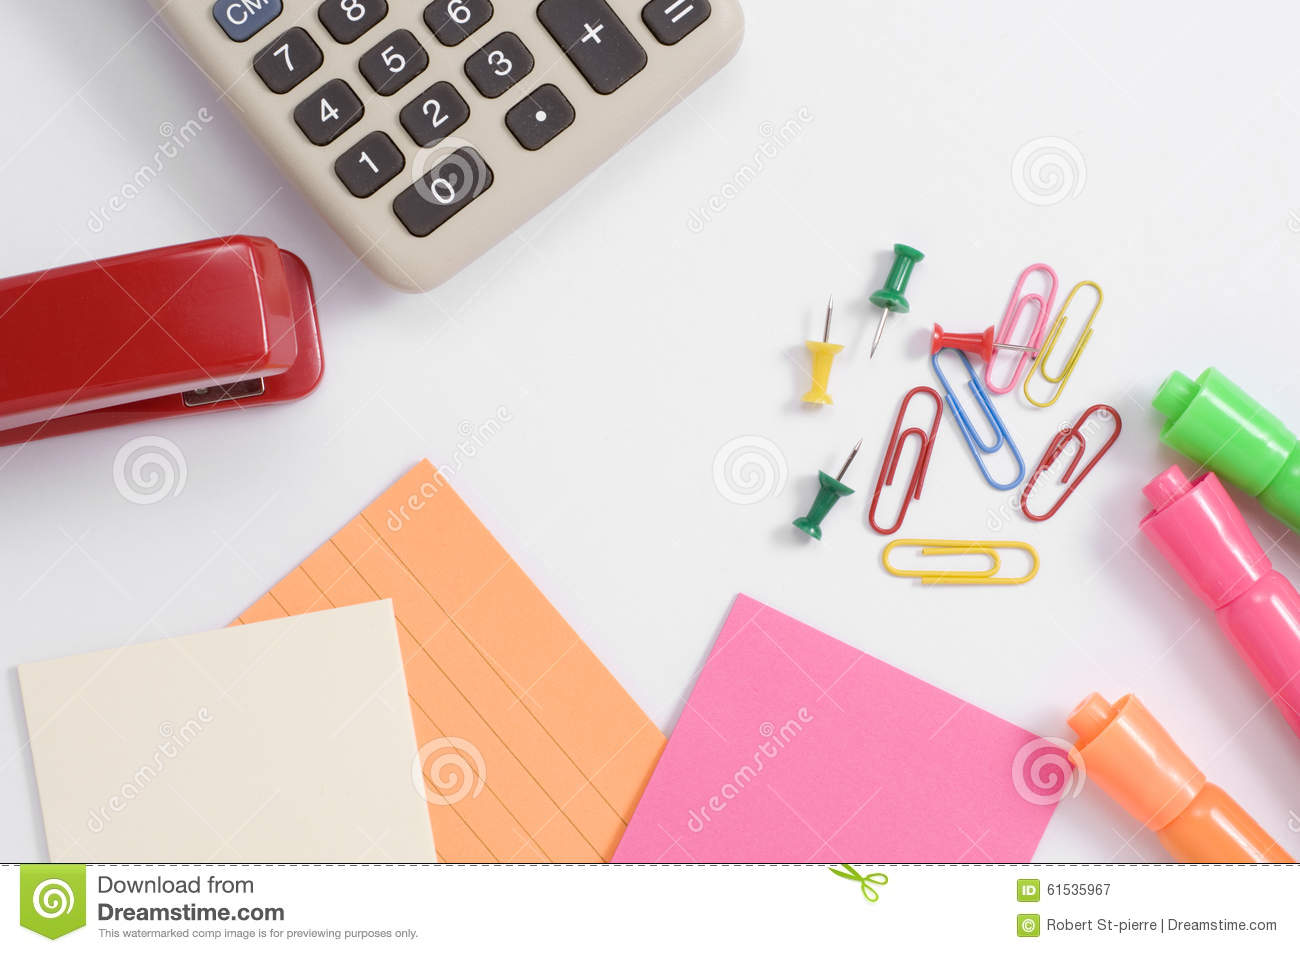 colorful office supplies with calculator and red stapler